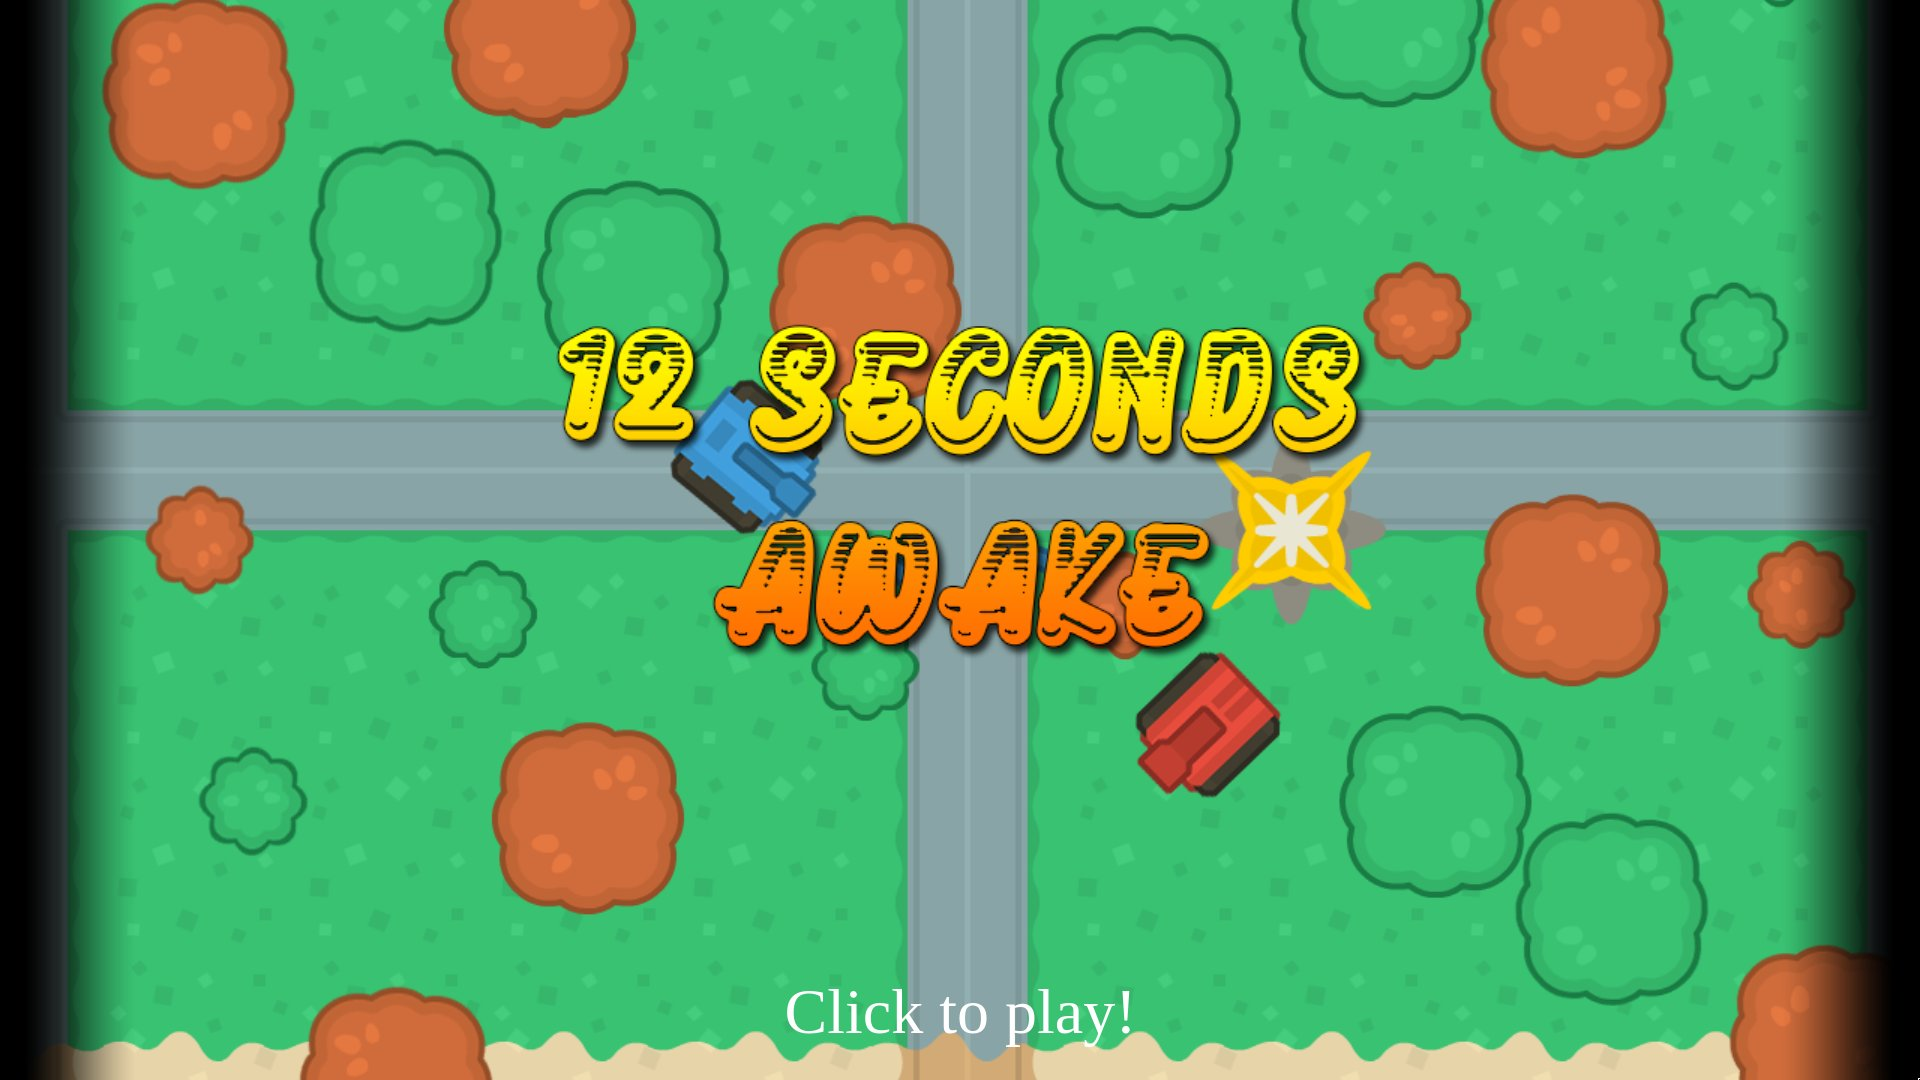 Title screen: click to play